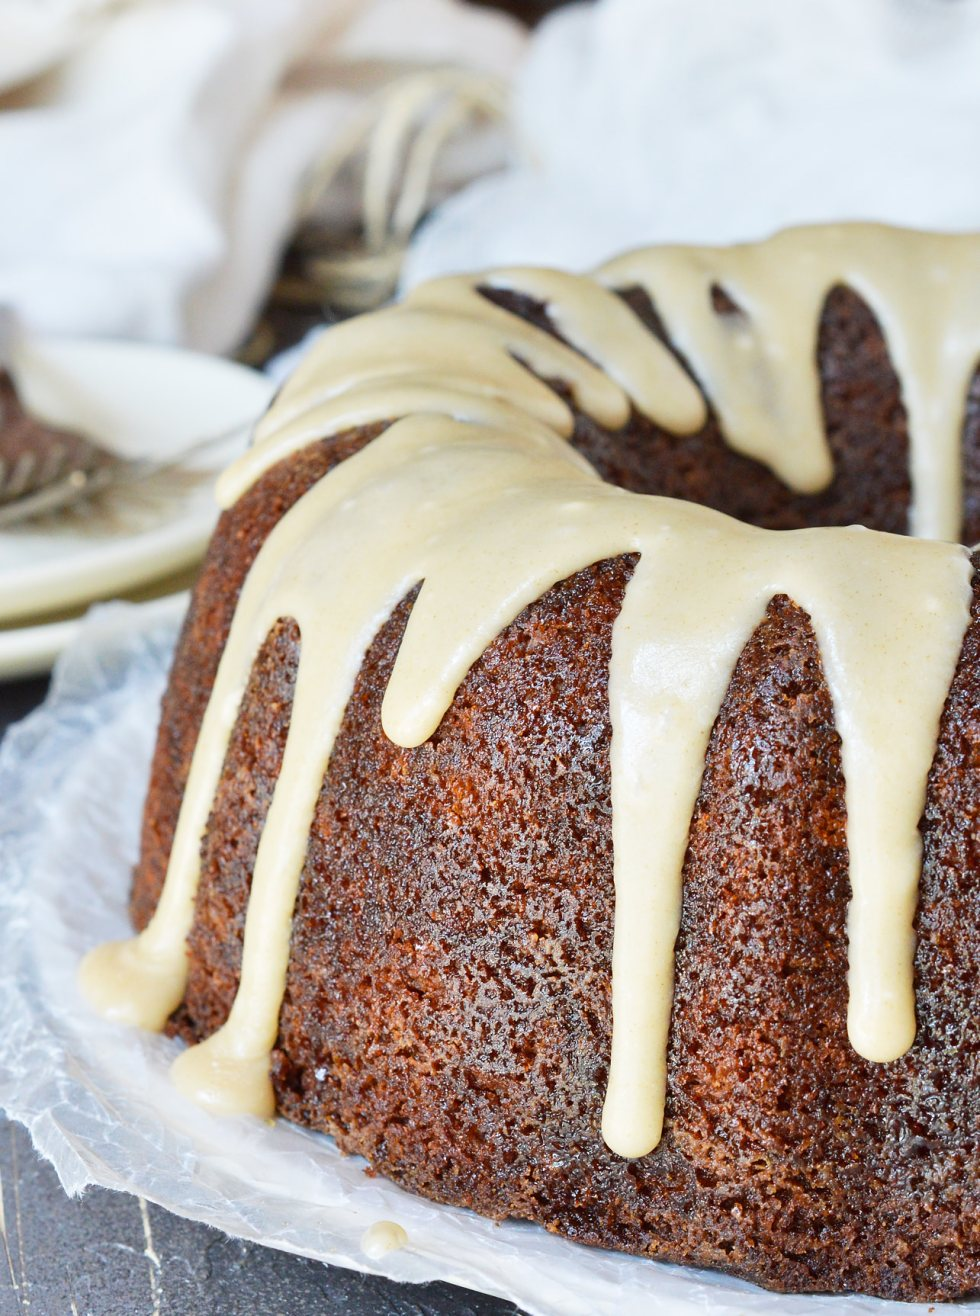 Need a dessert recipe that is easy, delicious and impressive? This Brown Butter Glazed Bundt Cake Recipe is all of those! This moist buttermilk cake is flavored with apple butter then topped with brown butter glaze. A guaranteed crowd pleaser!